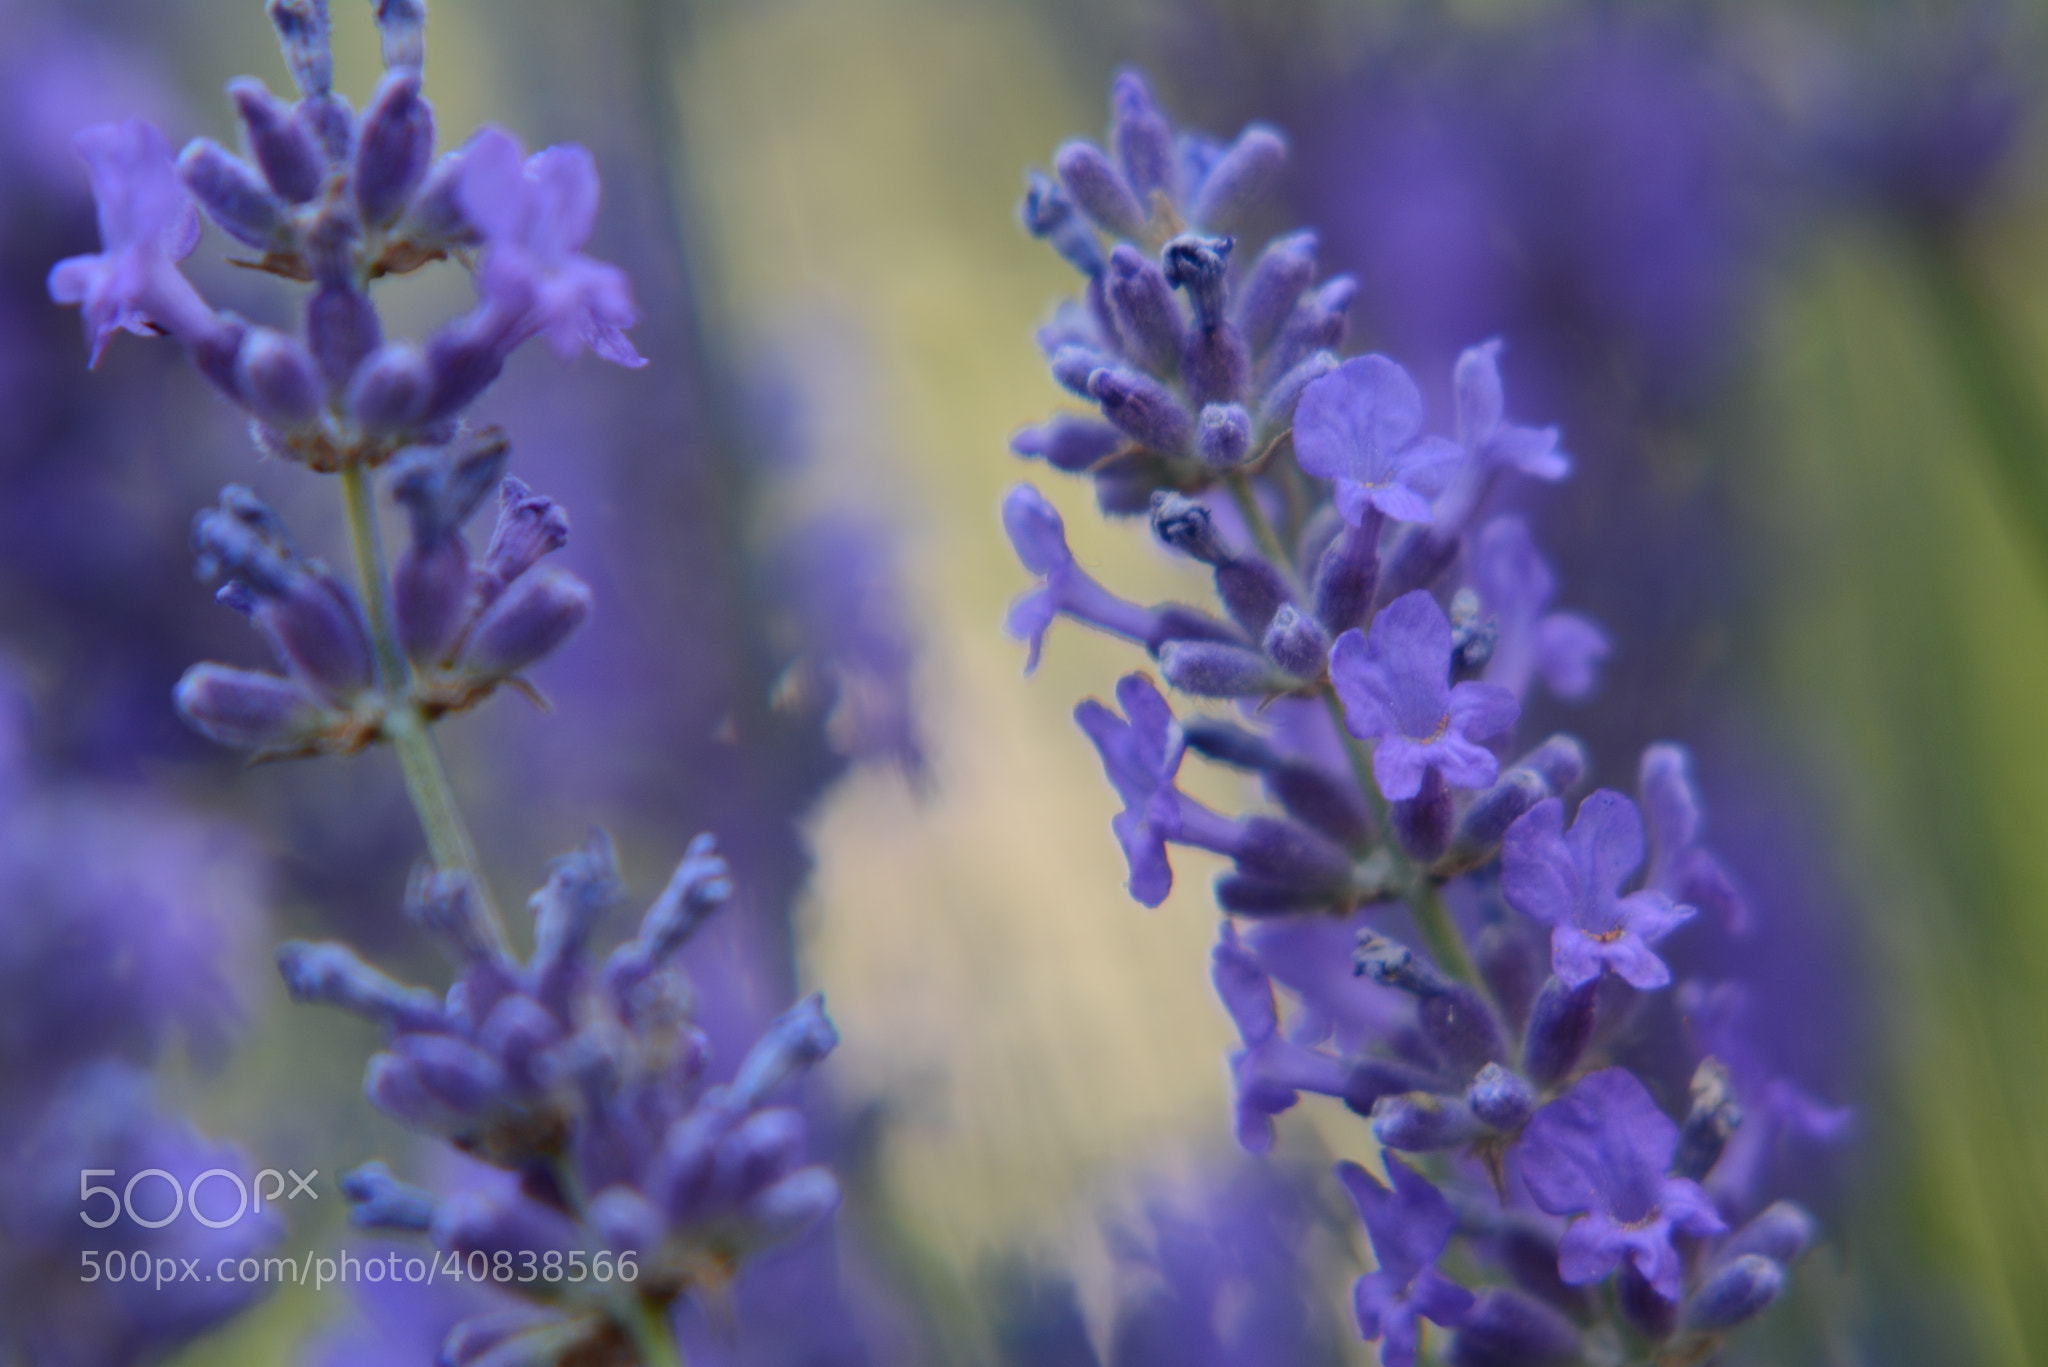 Photograph Lavender by Eng Yap on 500px